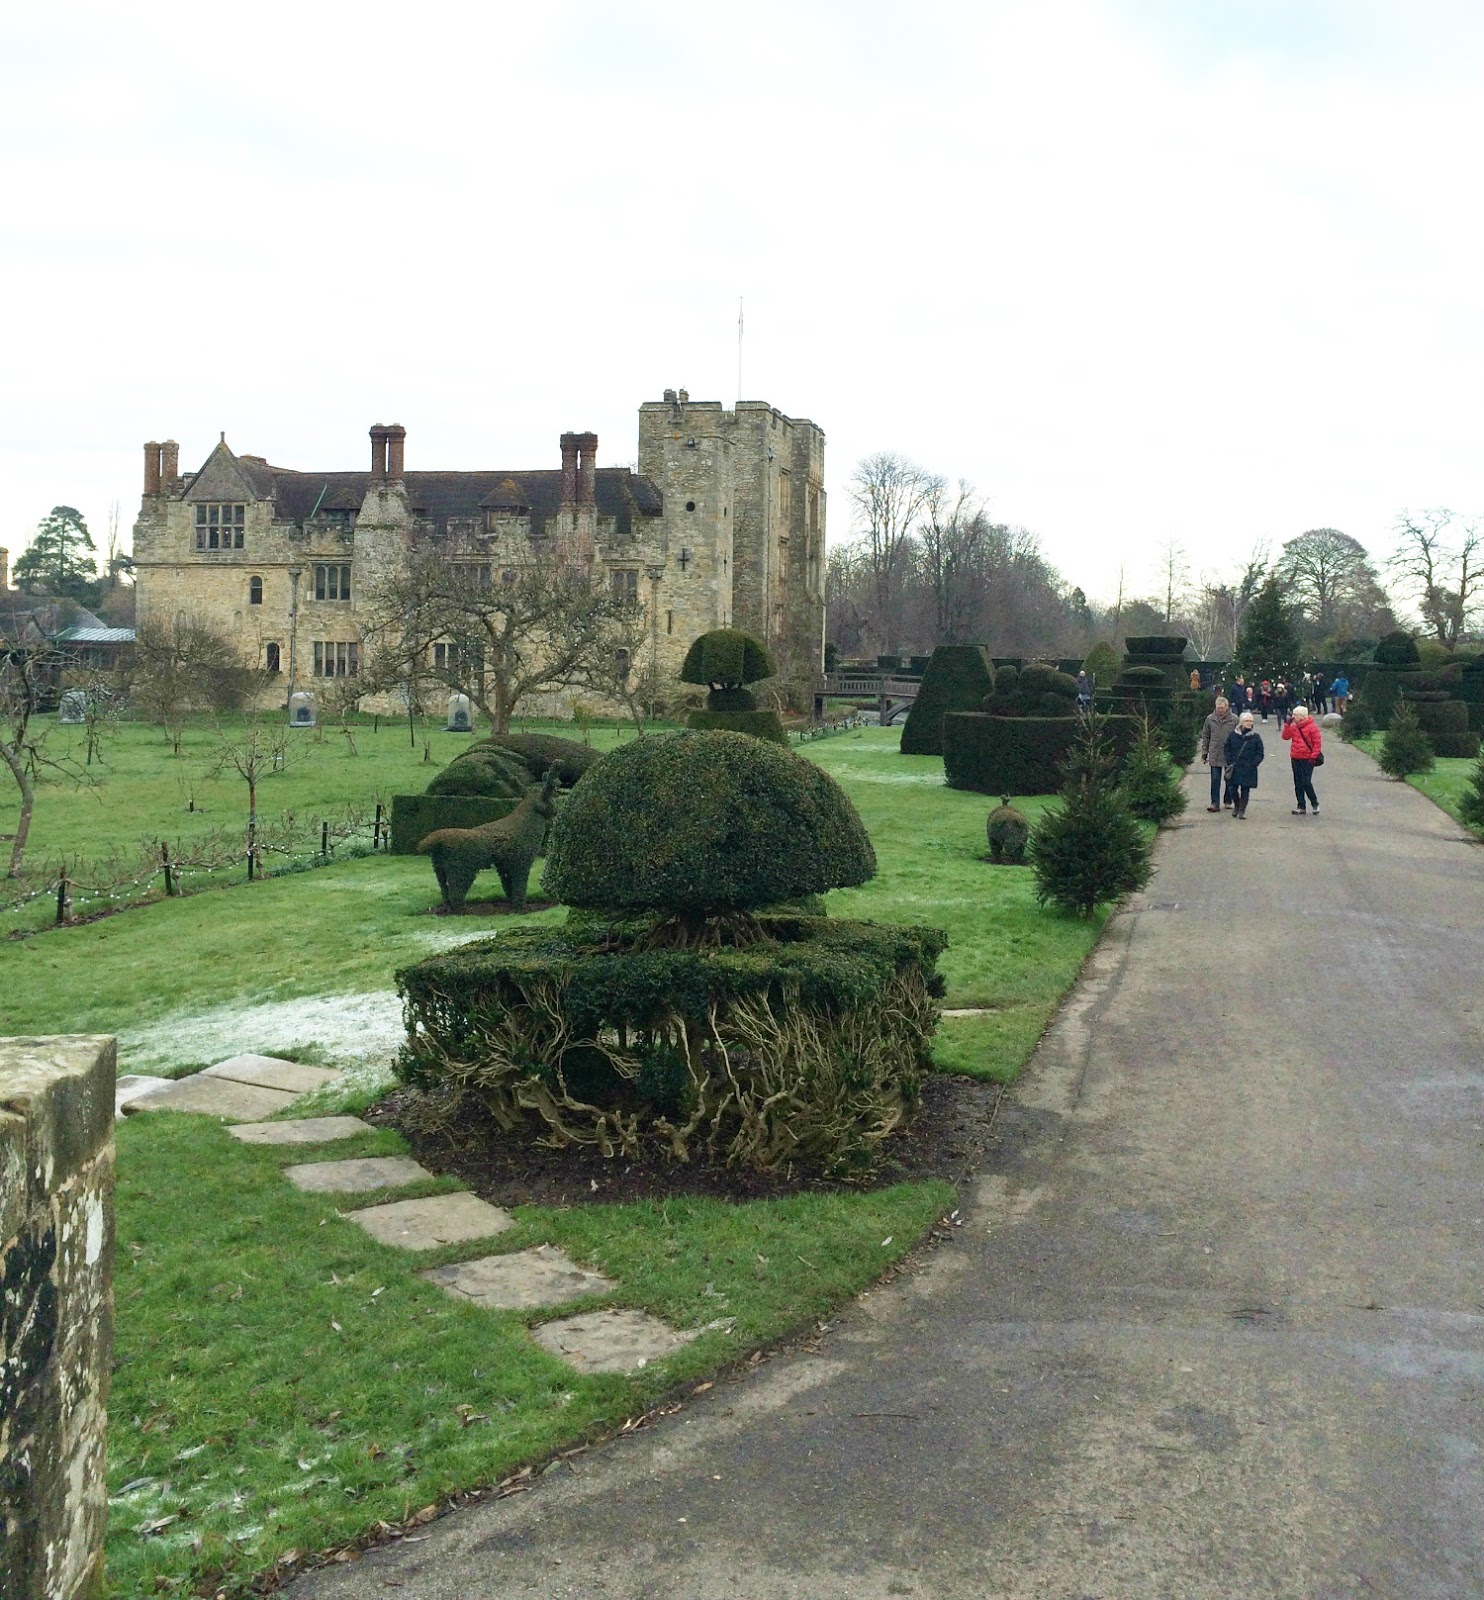 The View of Hever Castle, England